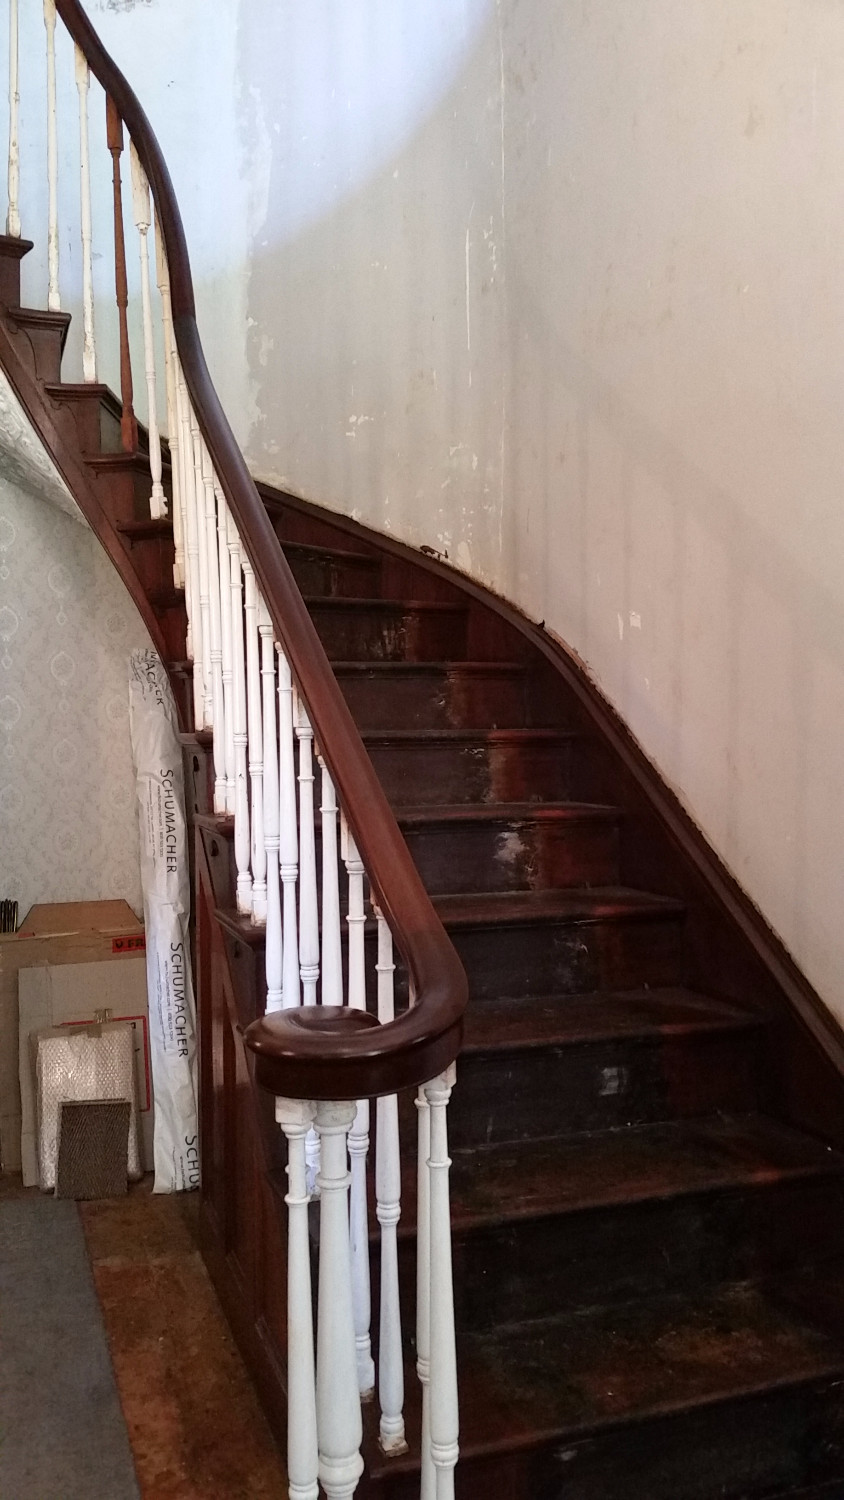 The rejuvenated bannister, complete with French polish.